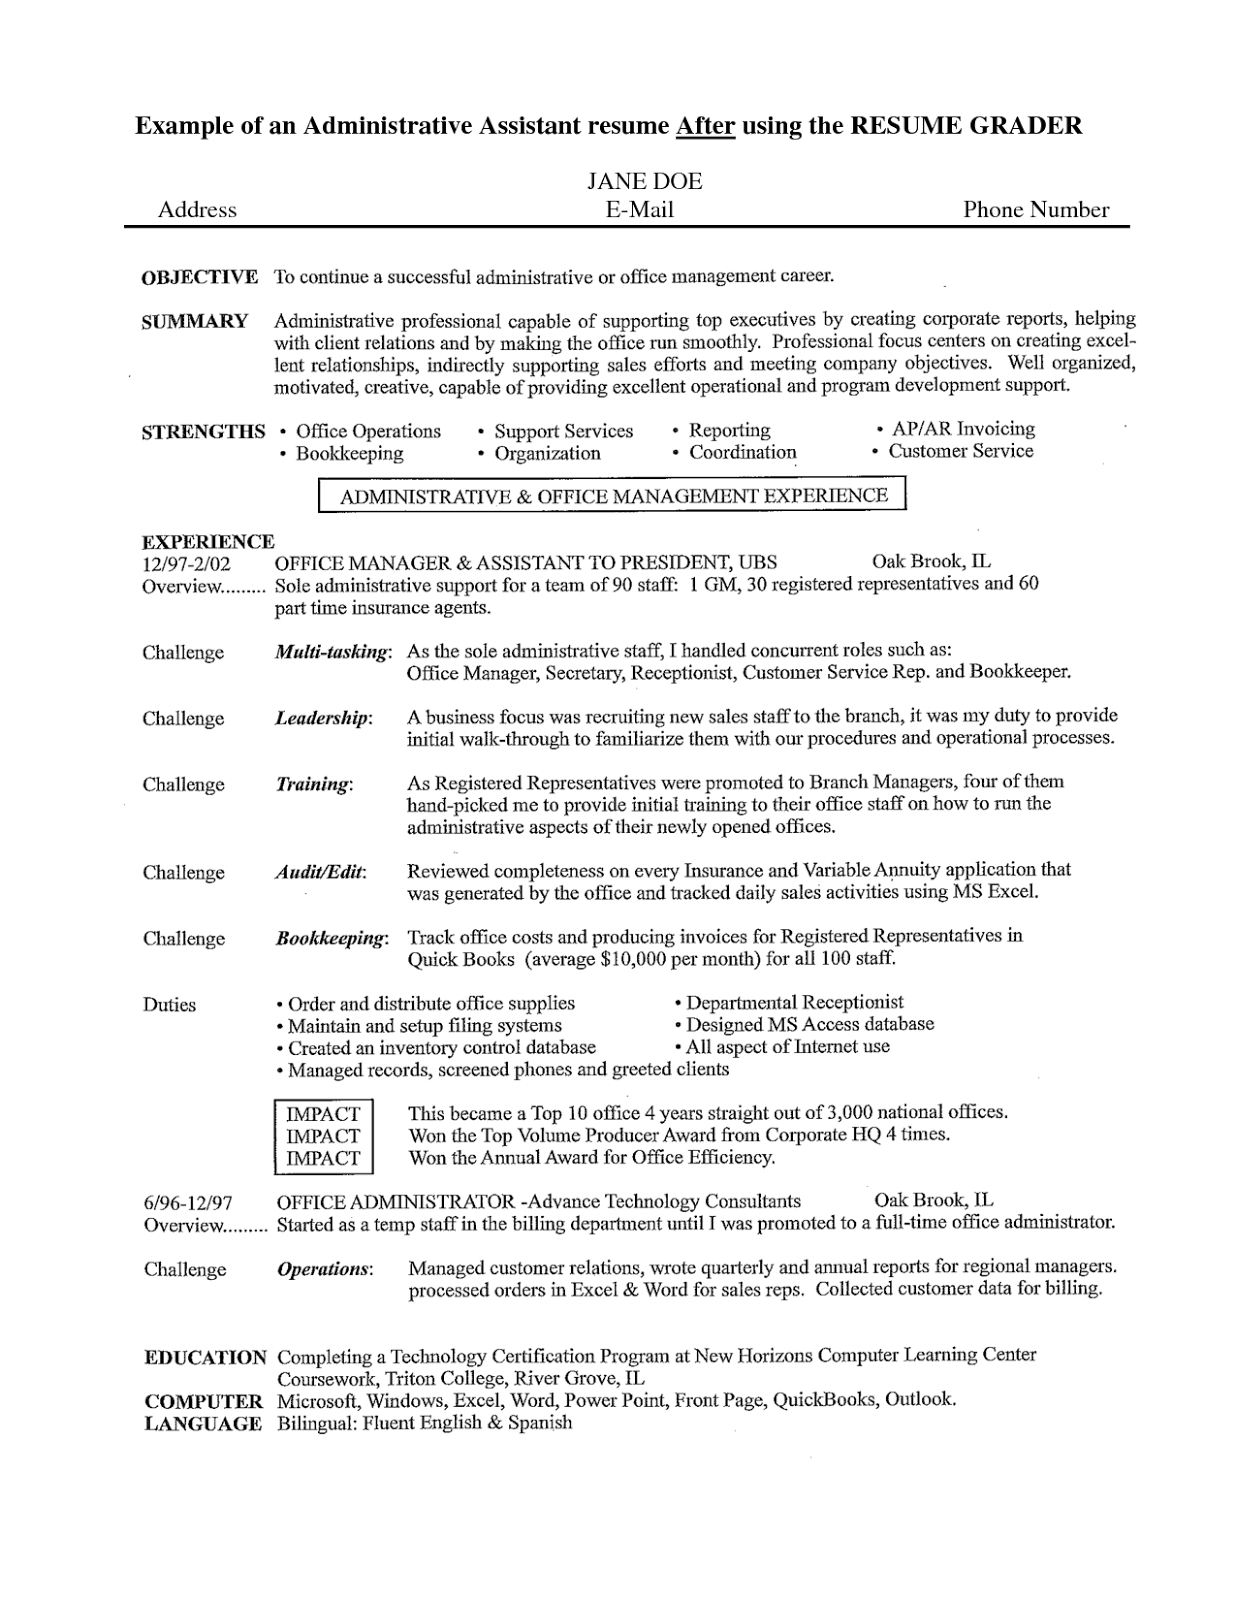 Resume Keywords For Administrative Assistant. administration ...